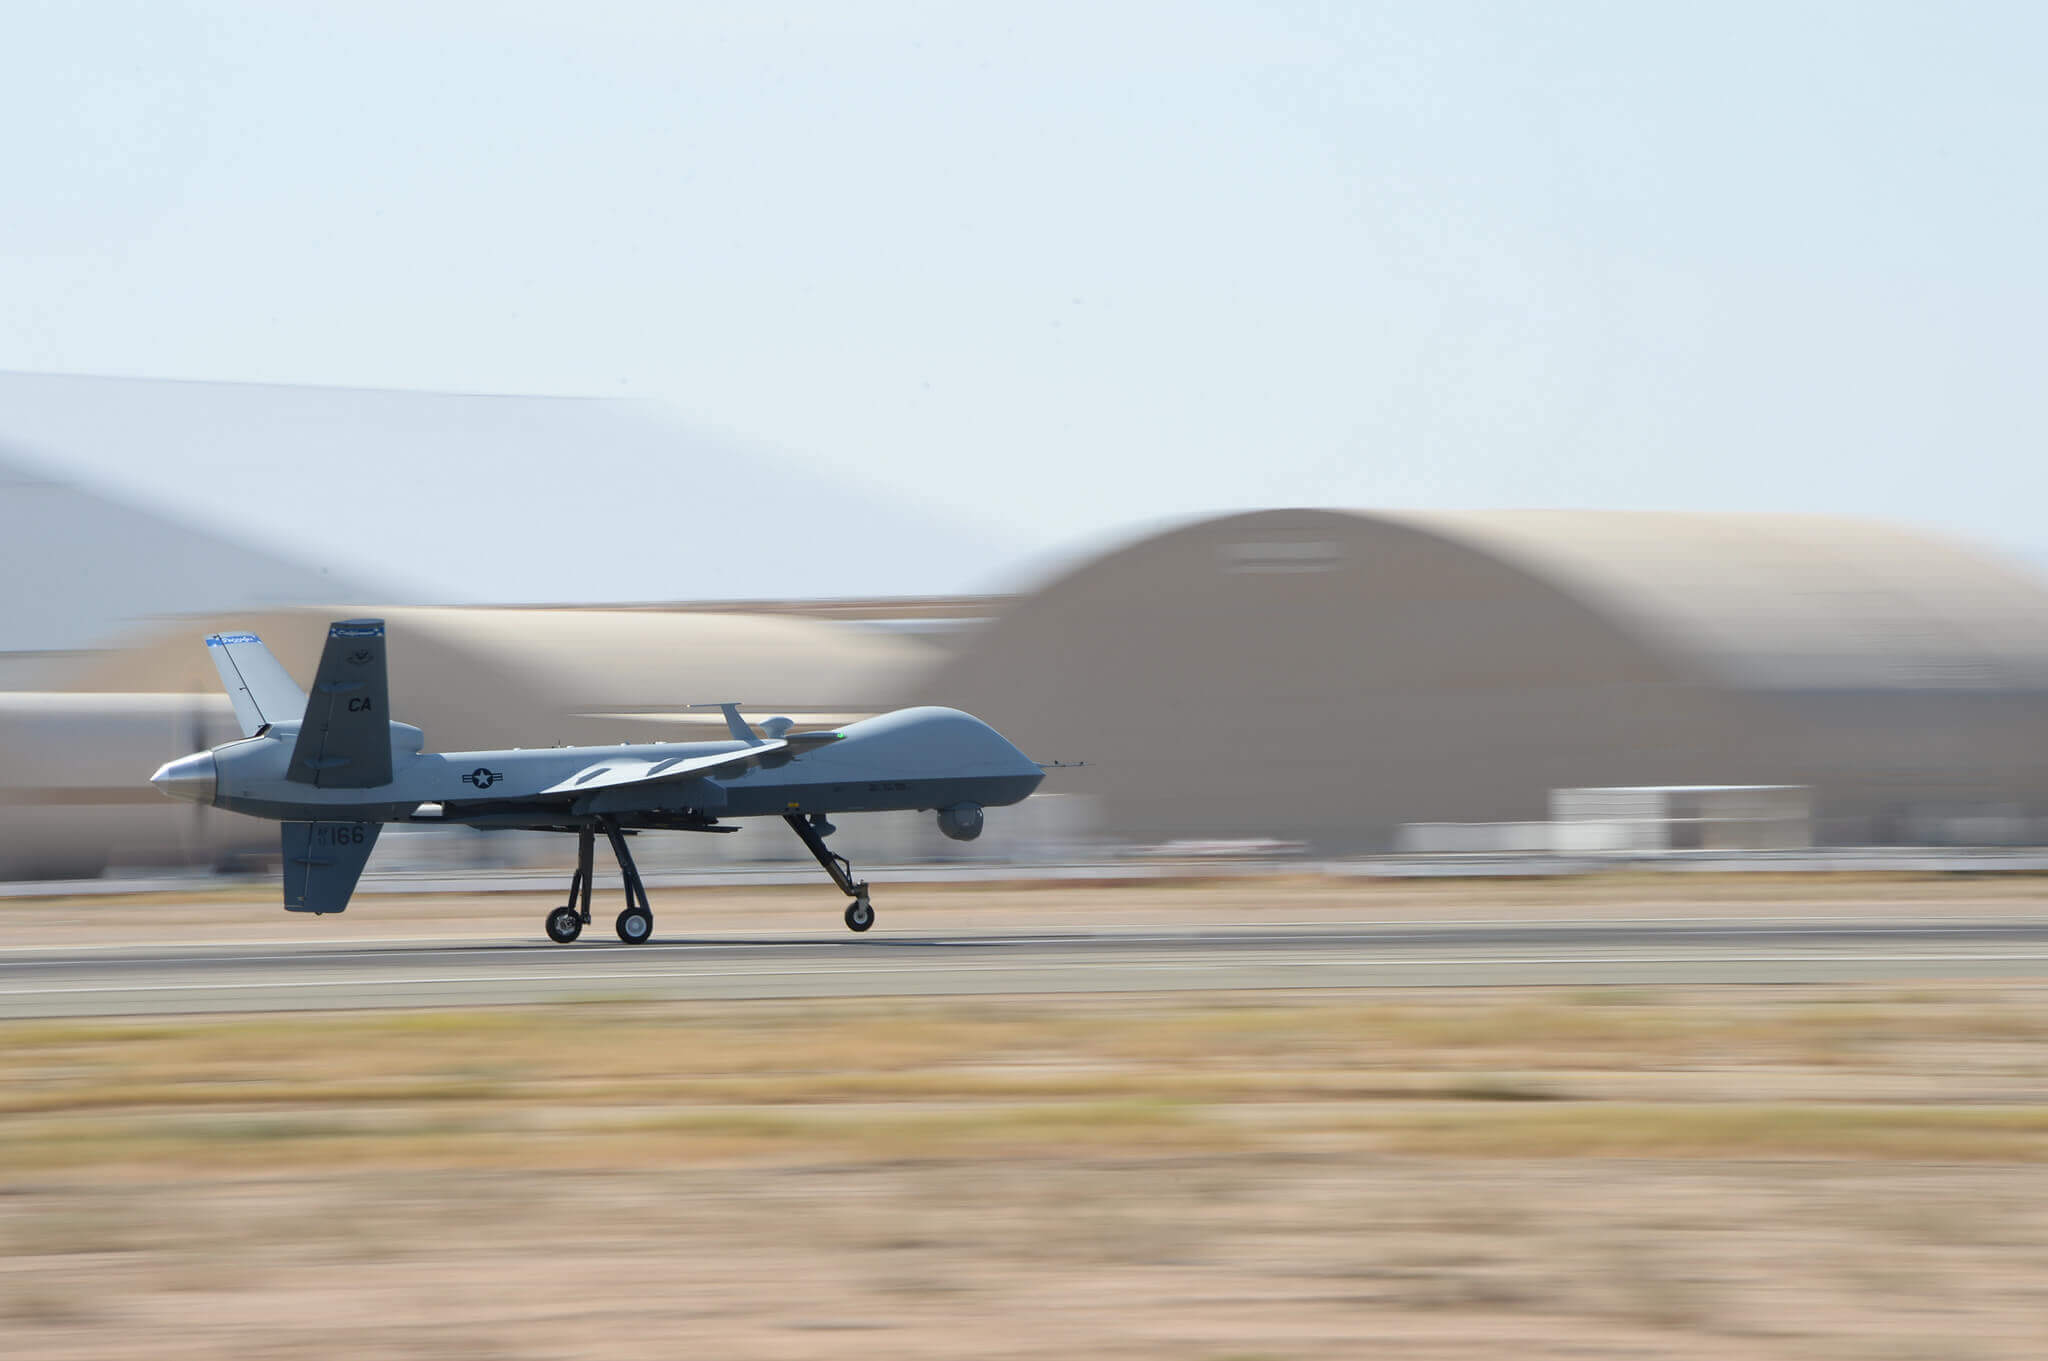 For the first time ever, the 163rd Reconnaissance Wing flies the MQ‐9 Reaper in the airspace over the Southern California Logistics Airport in Victorville, Calif., July 30, 2014. (Air National Guard photo by Senior Airman Michael Quiboloy/Released)